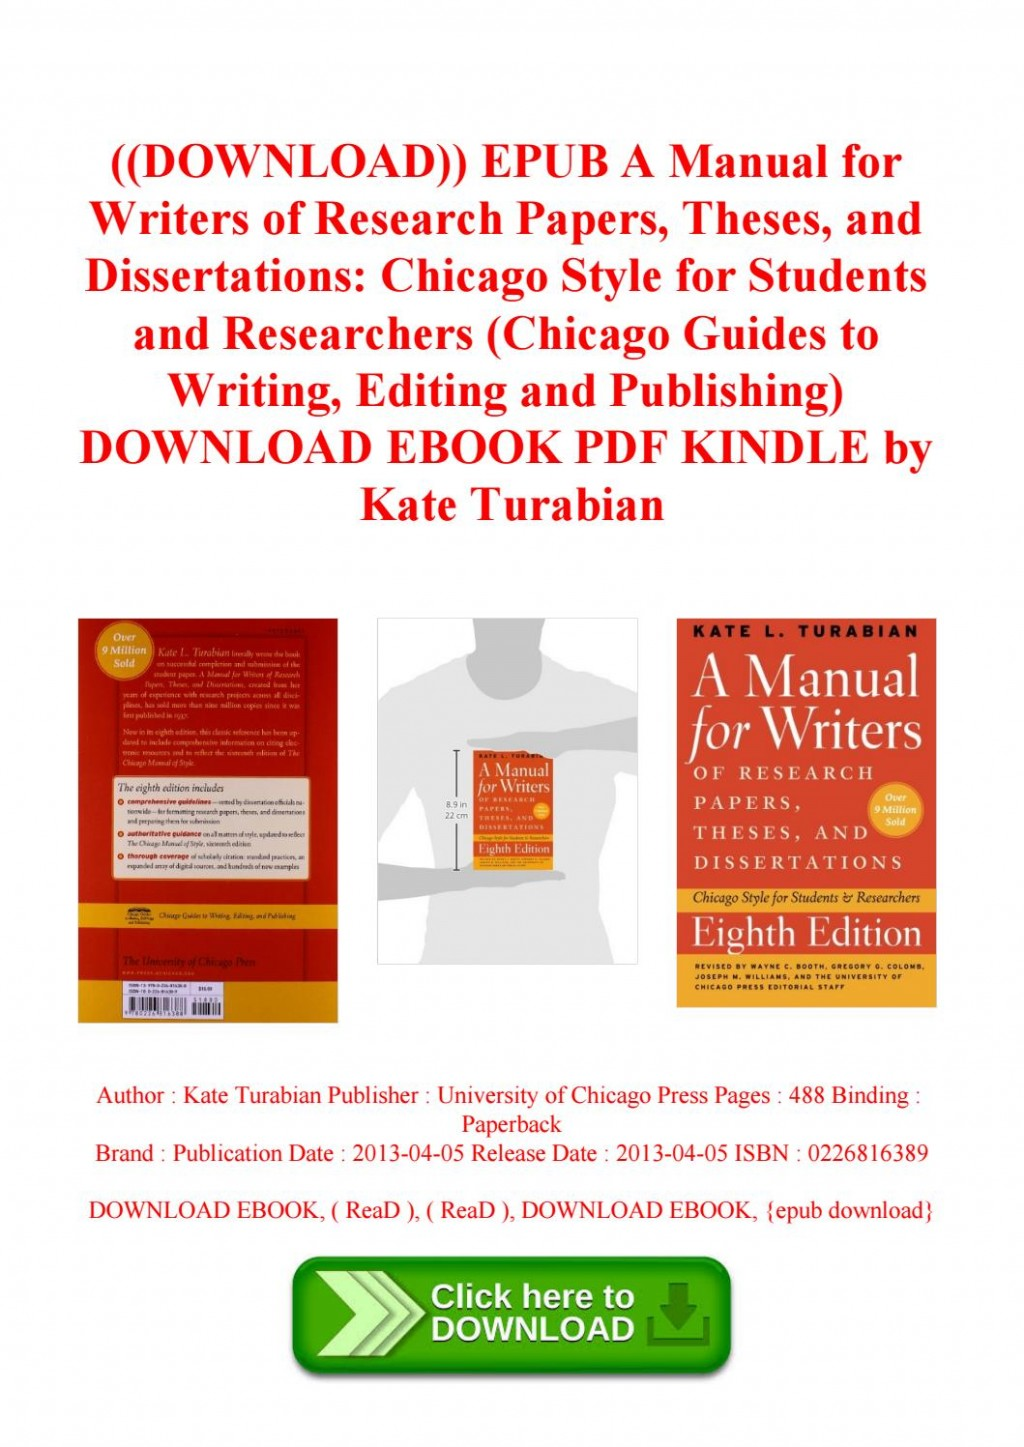 018 Manual For Writers Of Research Papers Theses And Dissertations Eighth Edition Paper Page 1 Phenomenal A Pdf Large